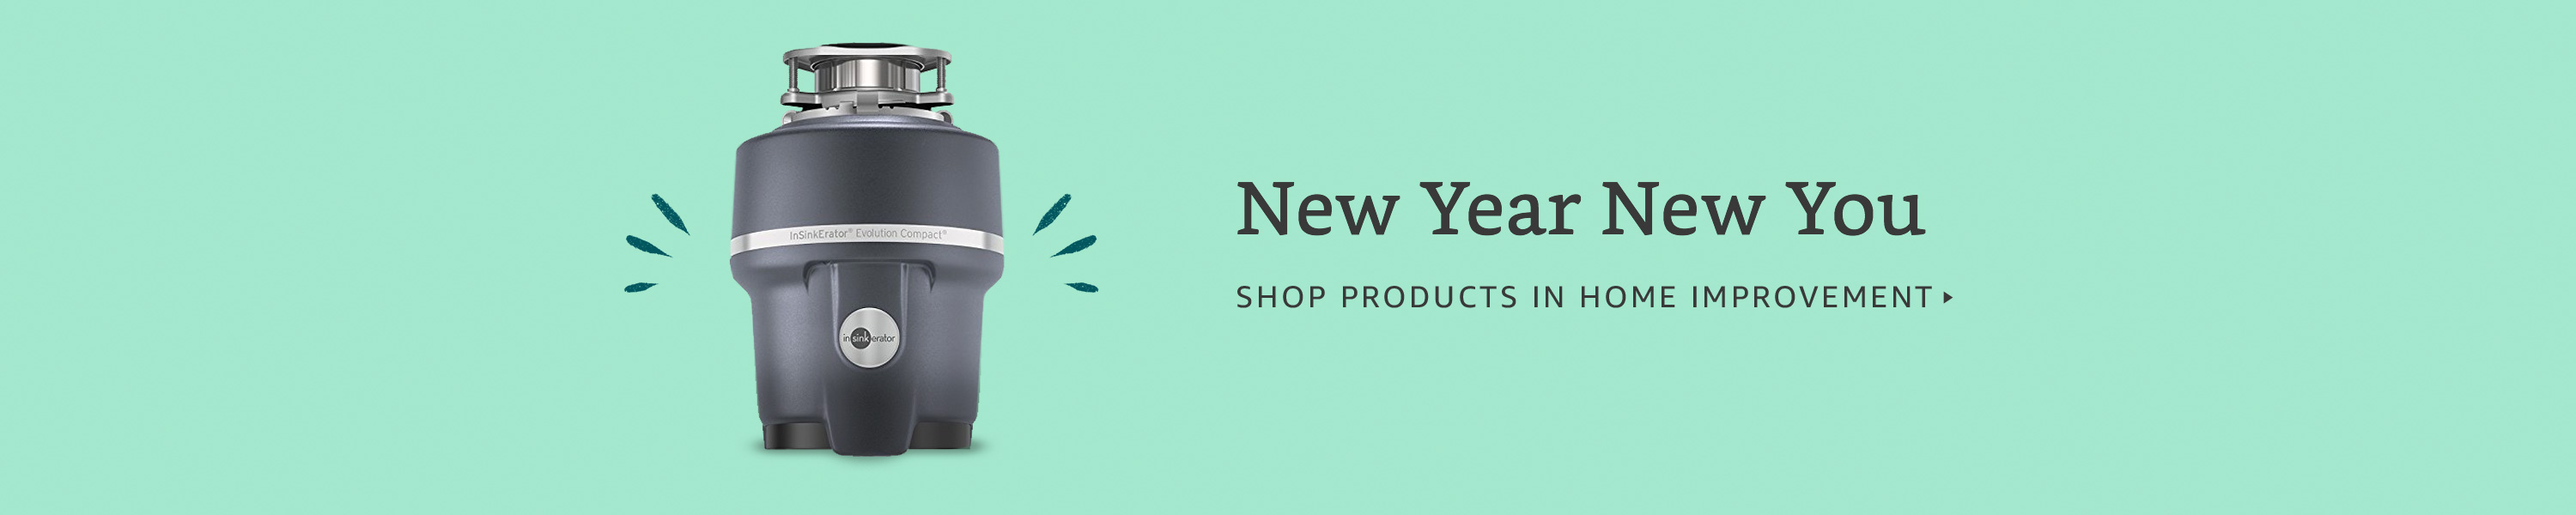 New Year New You. Shop products in Home Improvement.